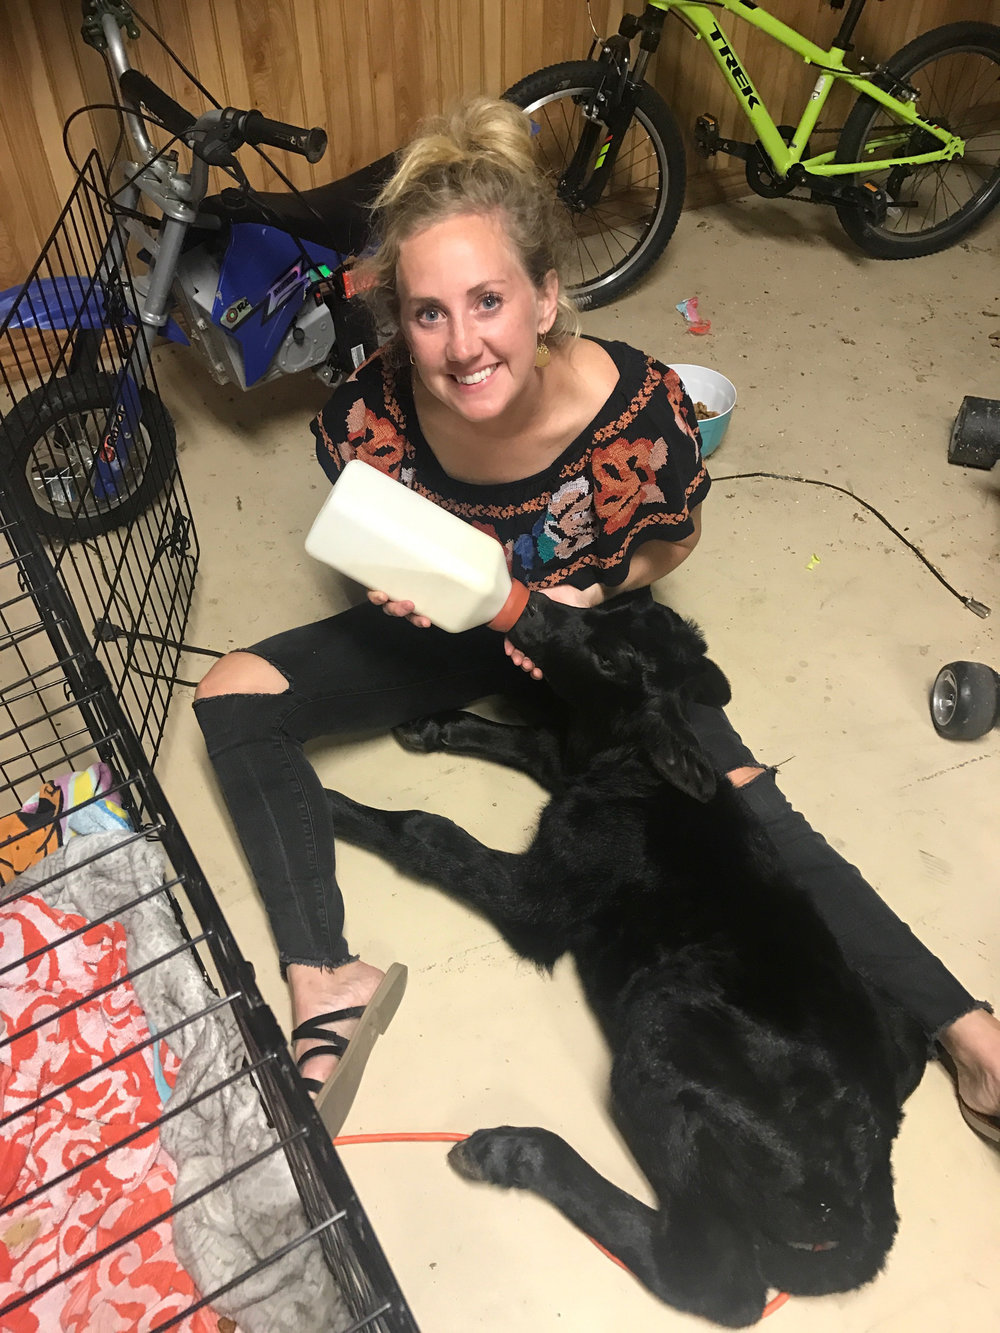 ^ Even on her birthday, Mali takes care of a sick calf in her garage.